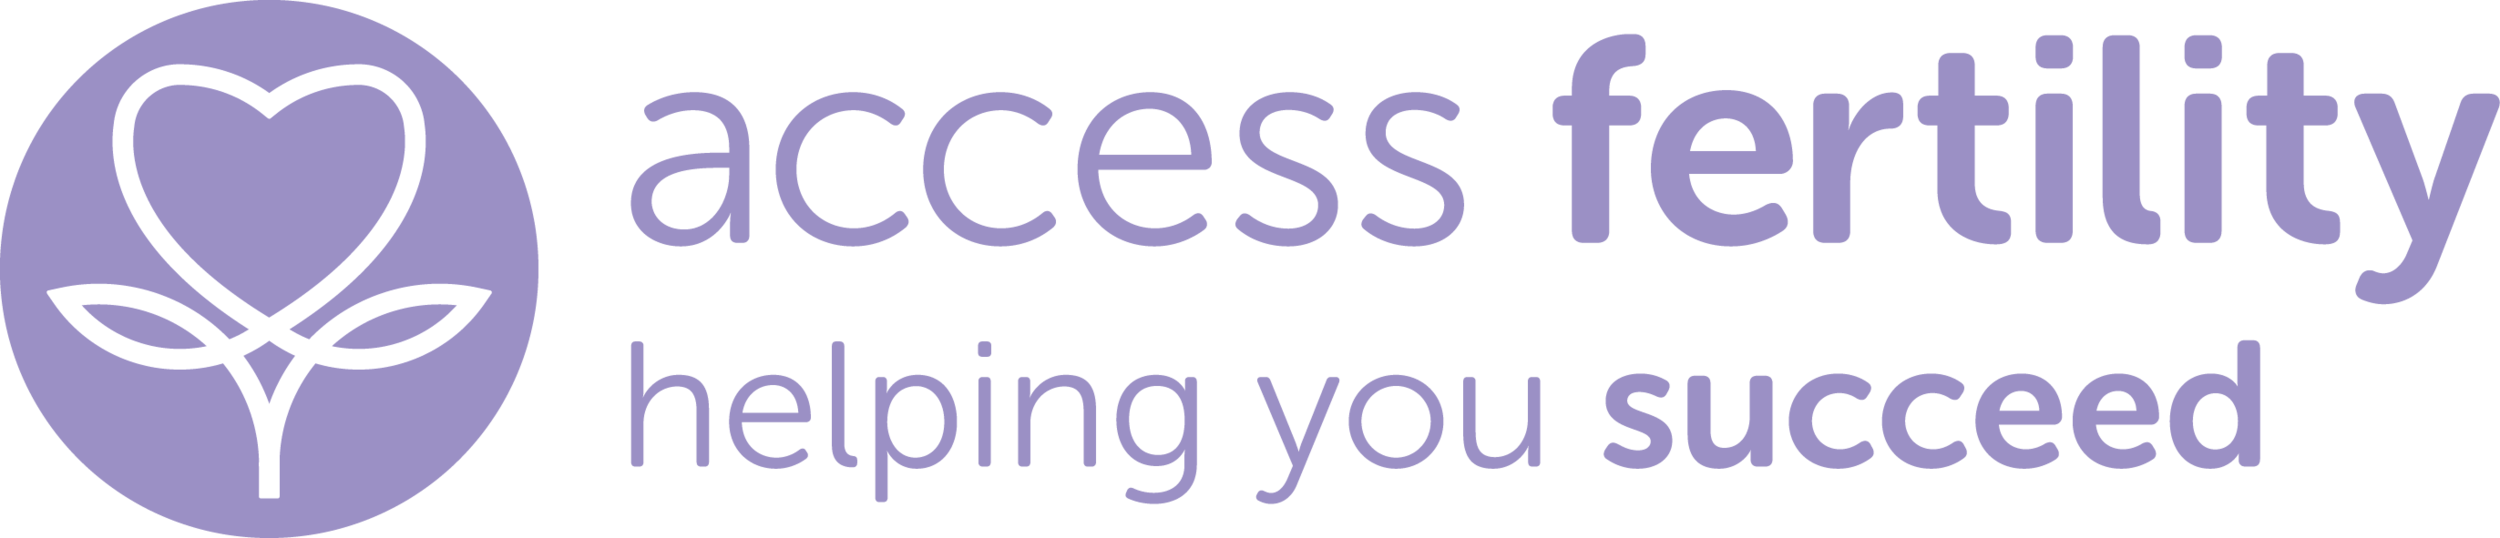 access-fertility_logo_CMYK (1).png